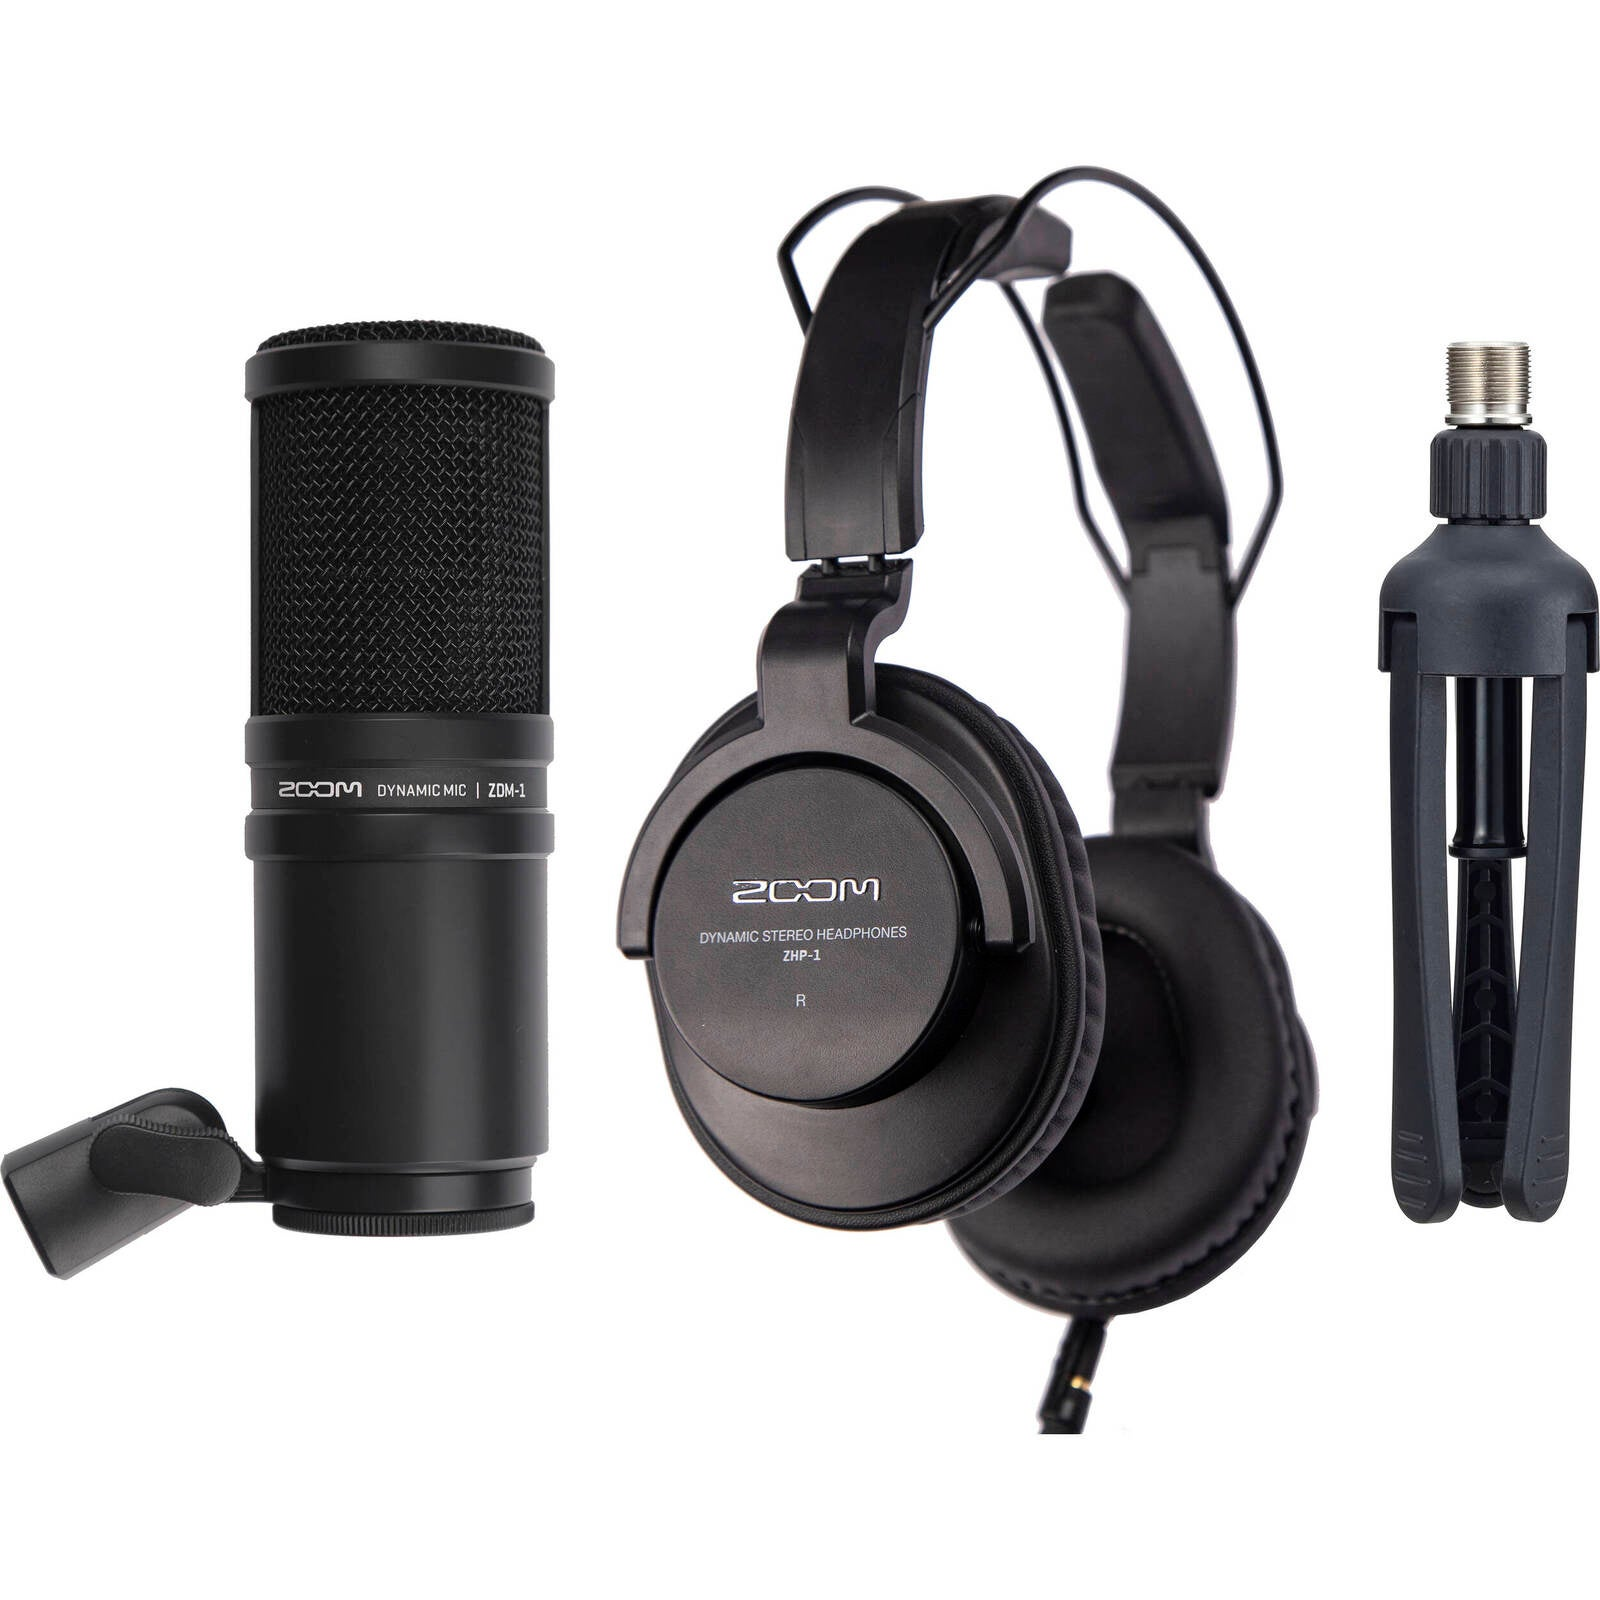 Zoom ZDM-1 Podcast Microphone Pack Microphone with Headphones and cable